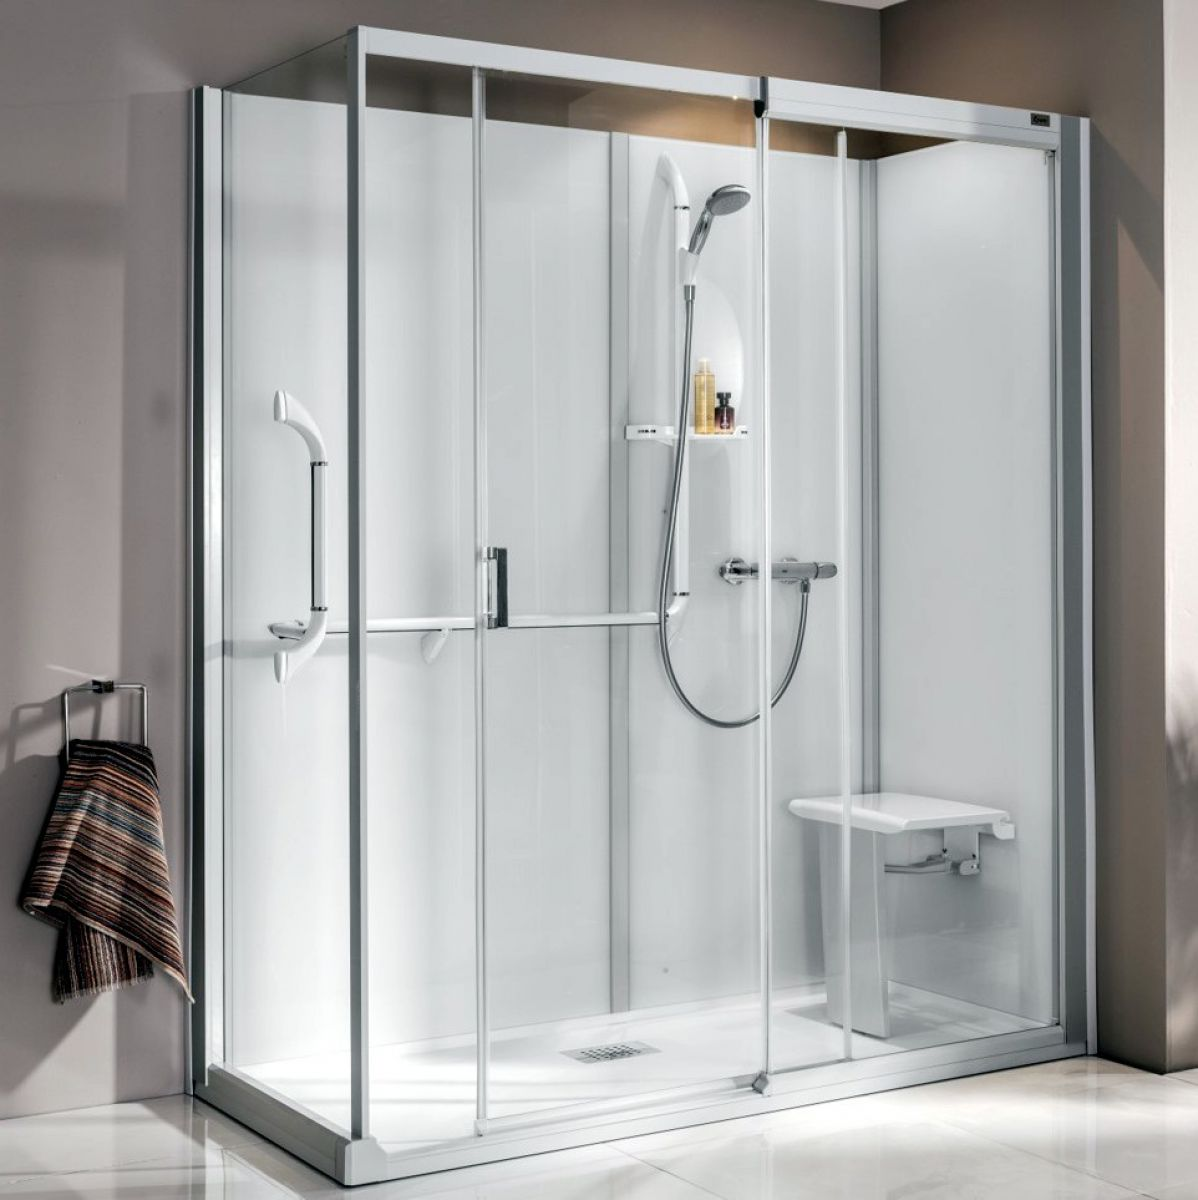 Kinedo Kinemagic Serenity+ Complete Shower Cubicle : UK Bathrooms